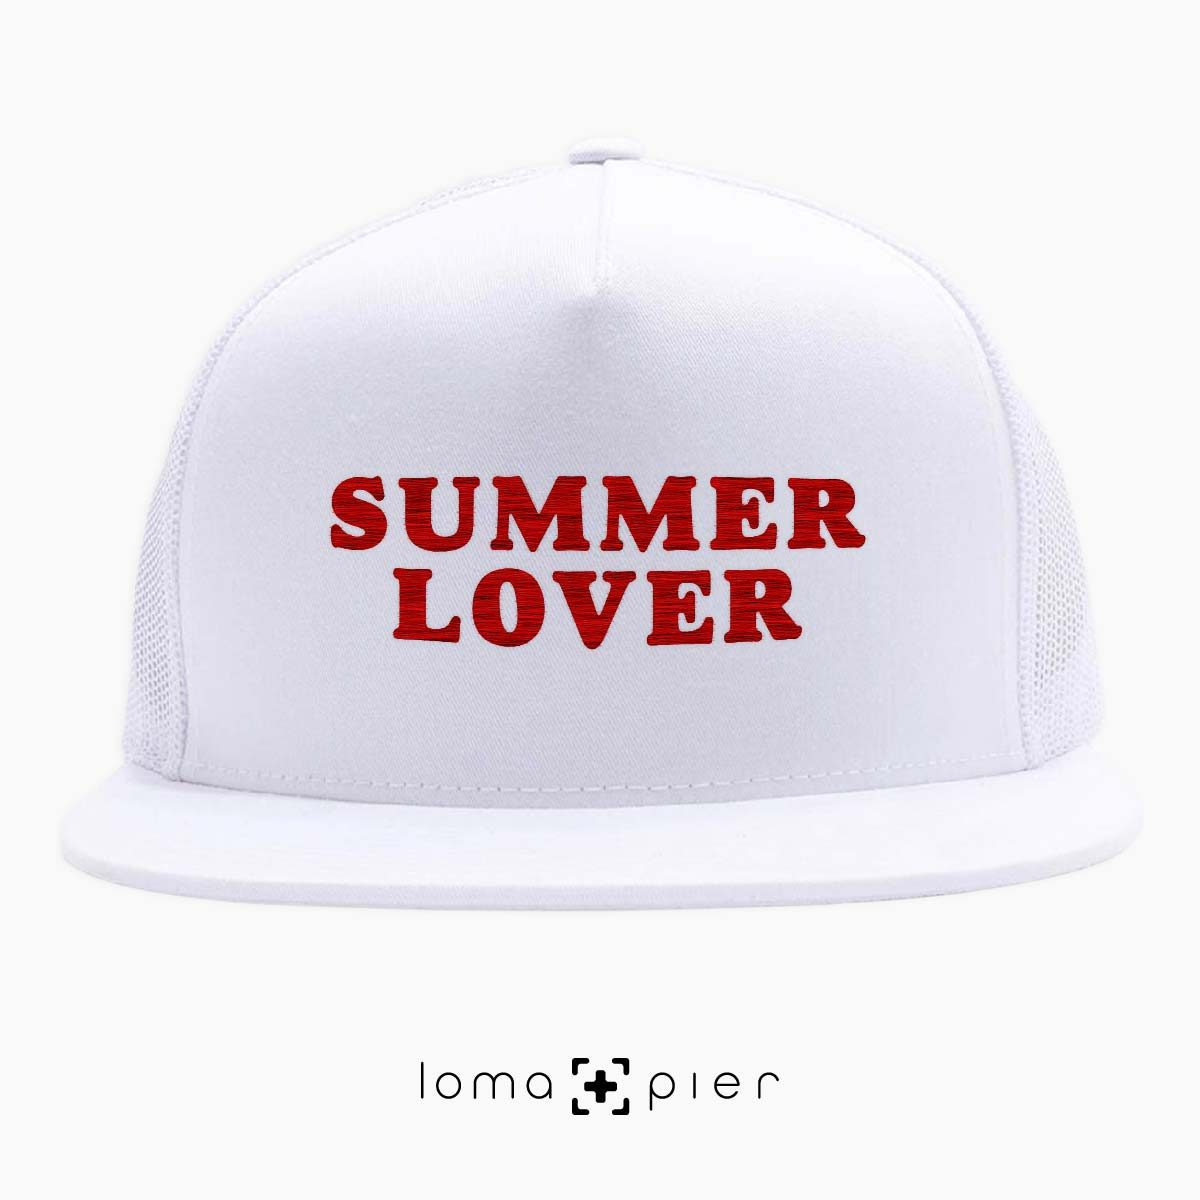 SUMMER LOVER beach netback hat in white by loma+pier hat store